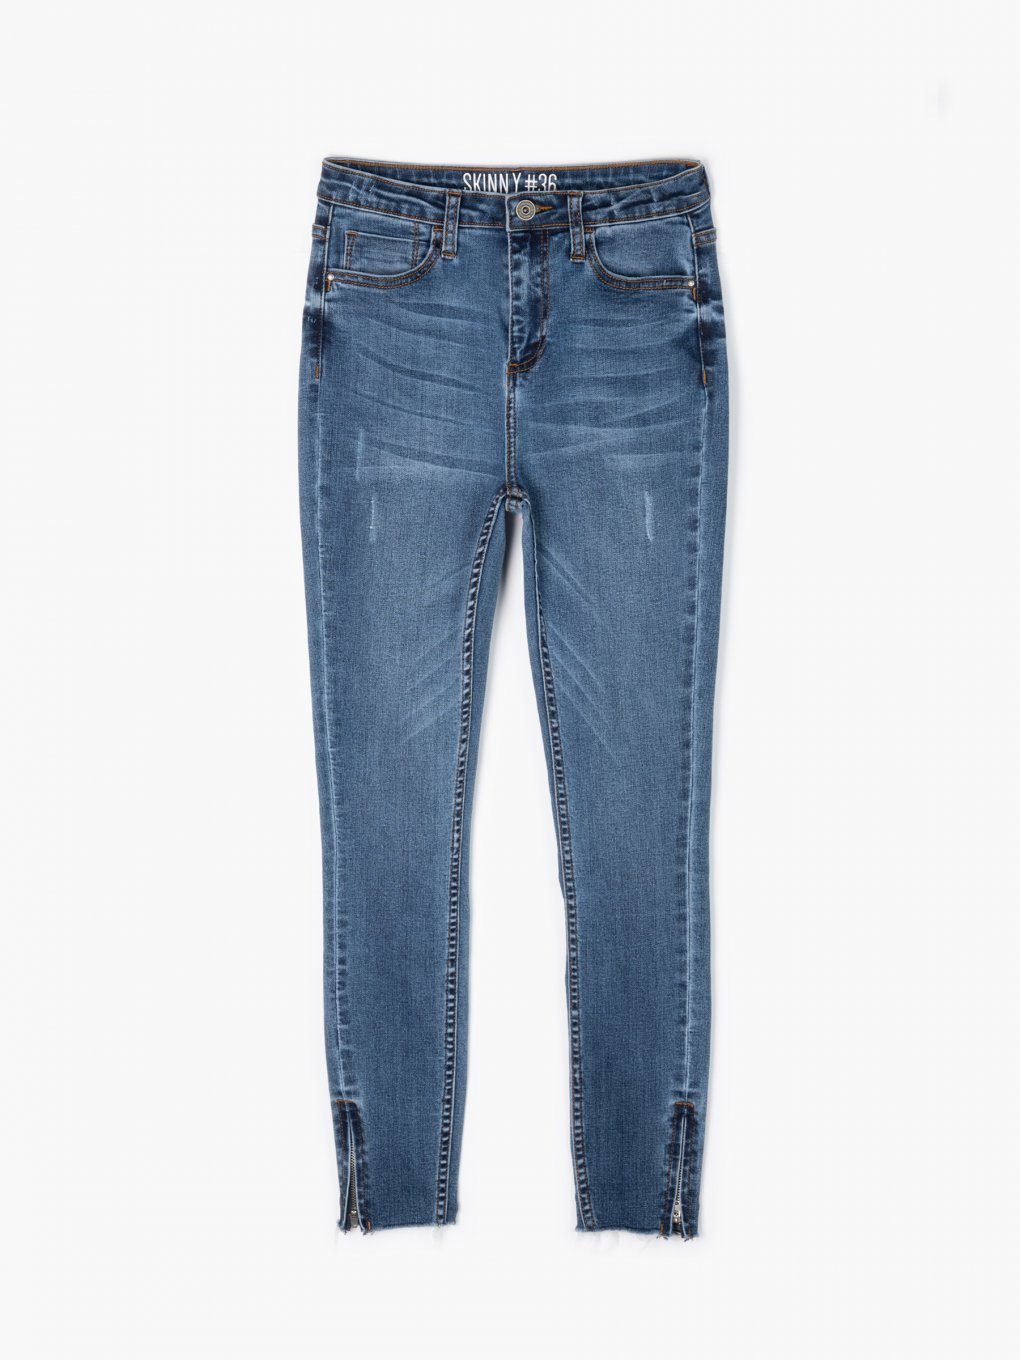 Skinny jeans with zippers on hems